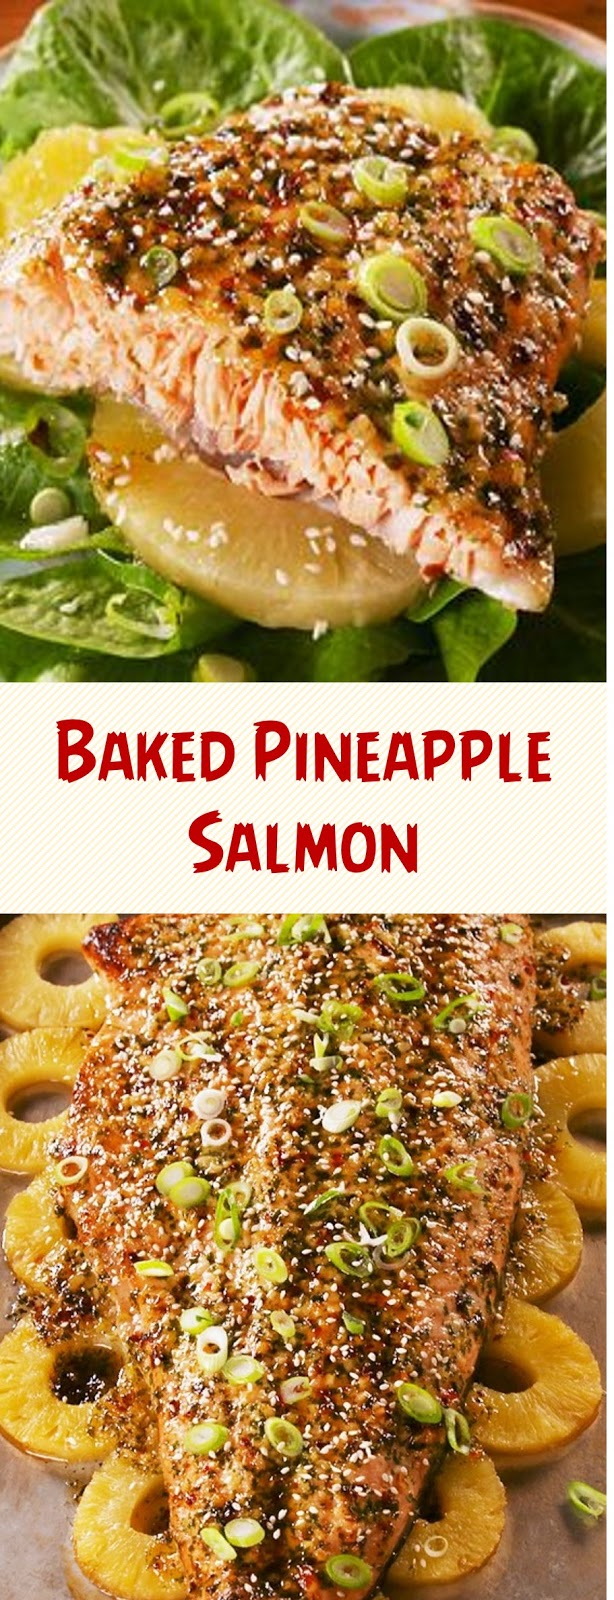 Baked Pineapple Salmon